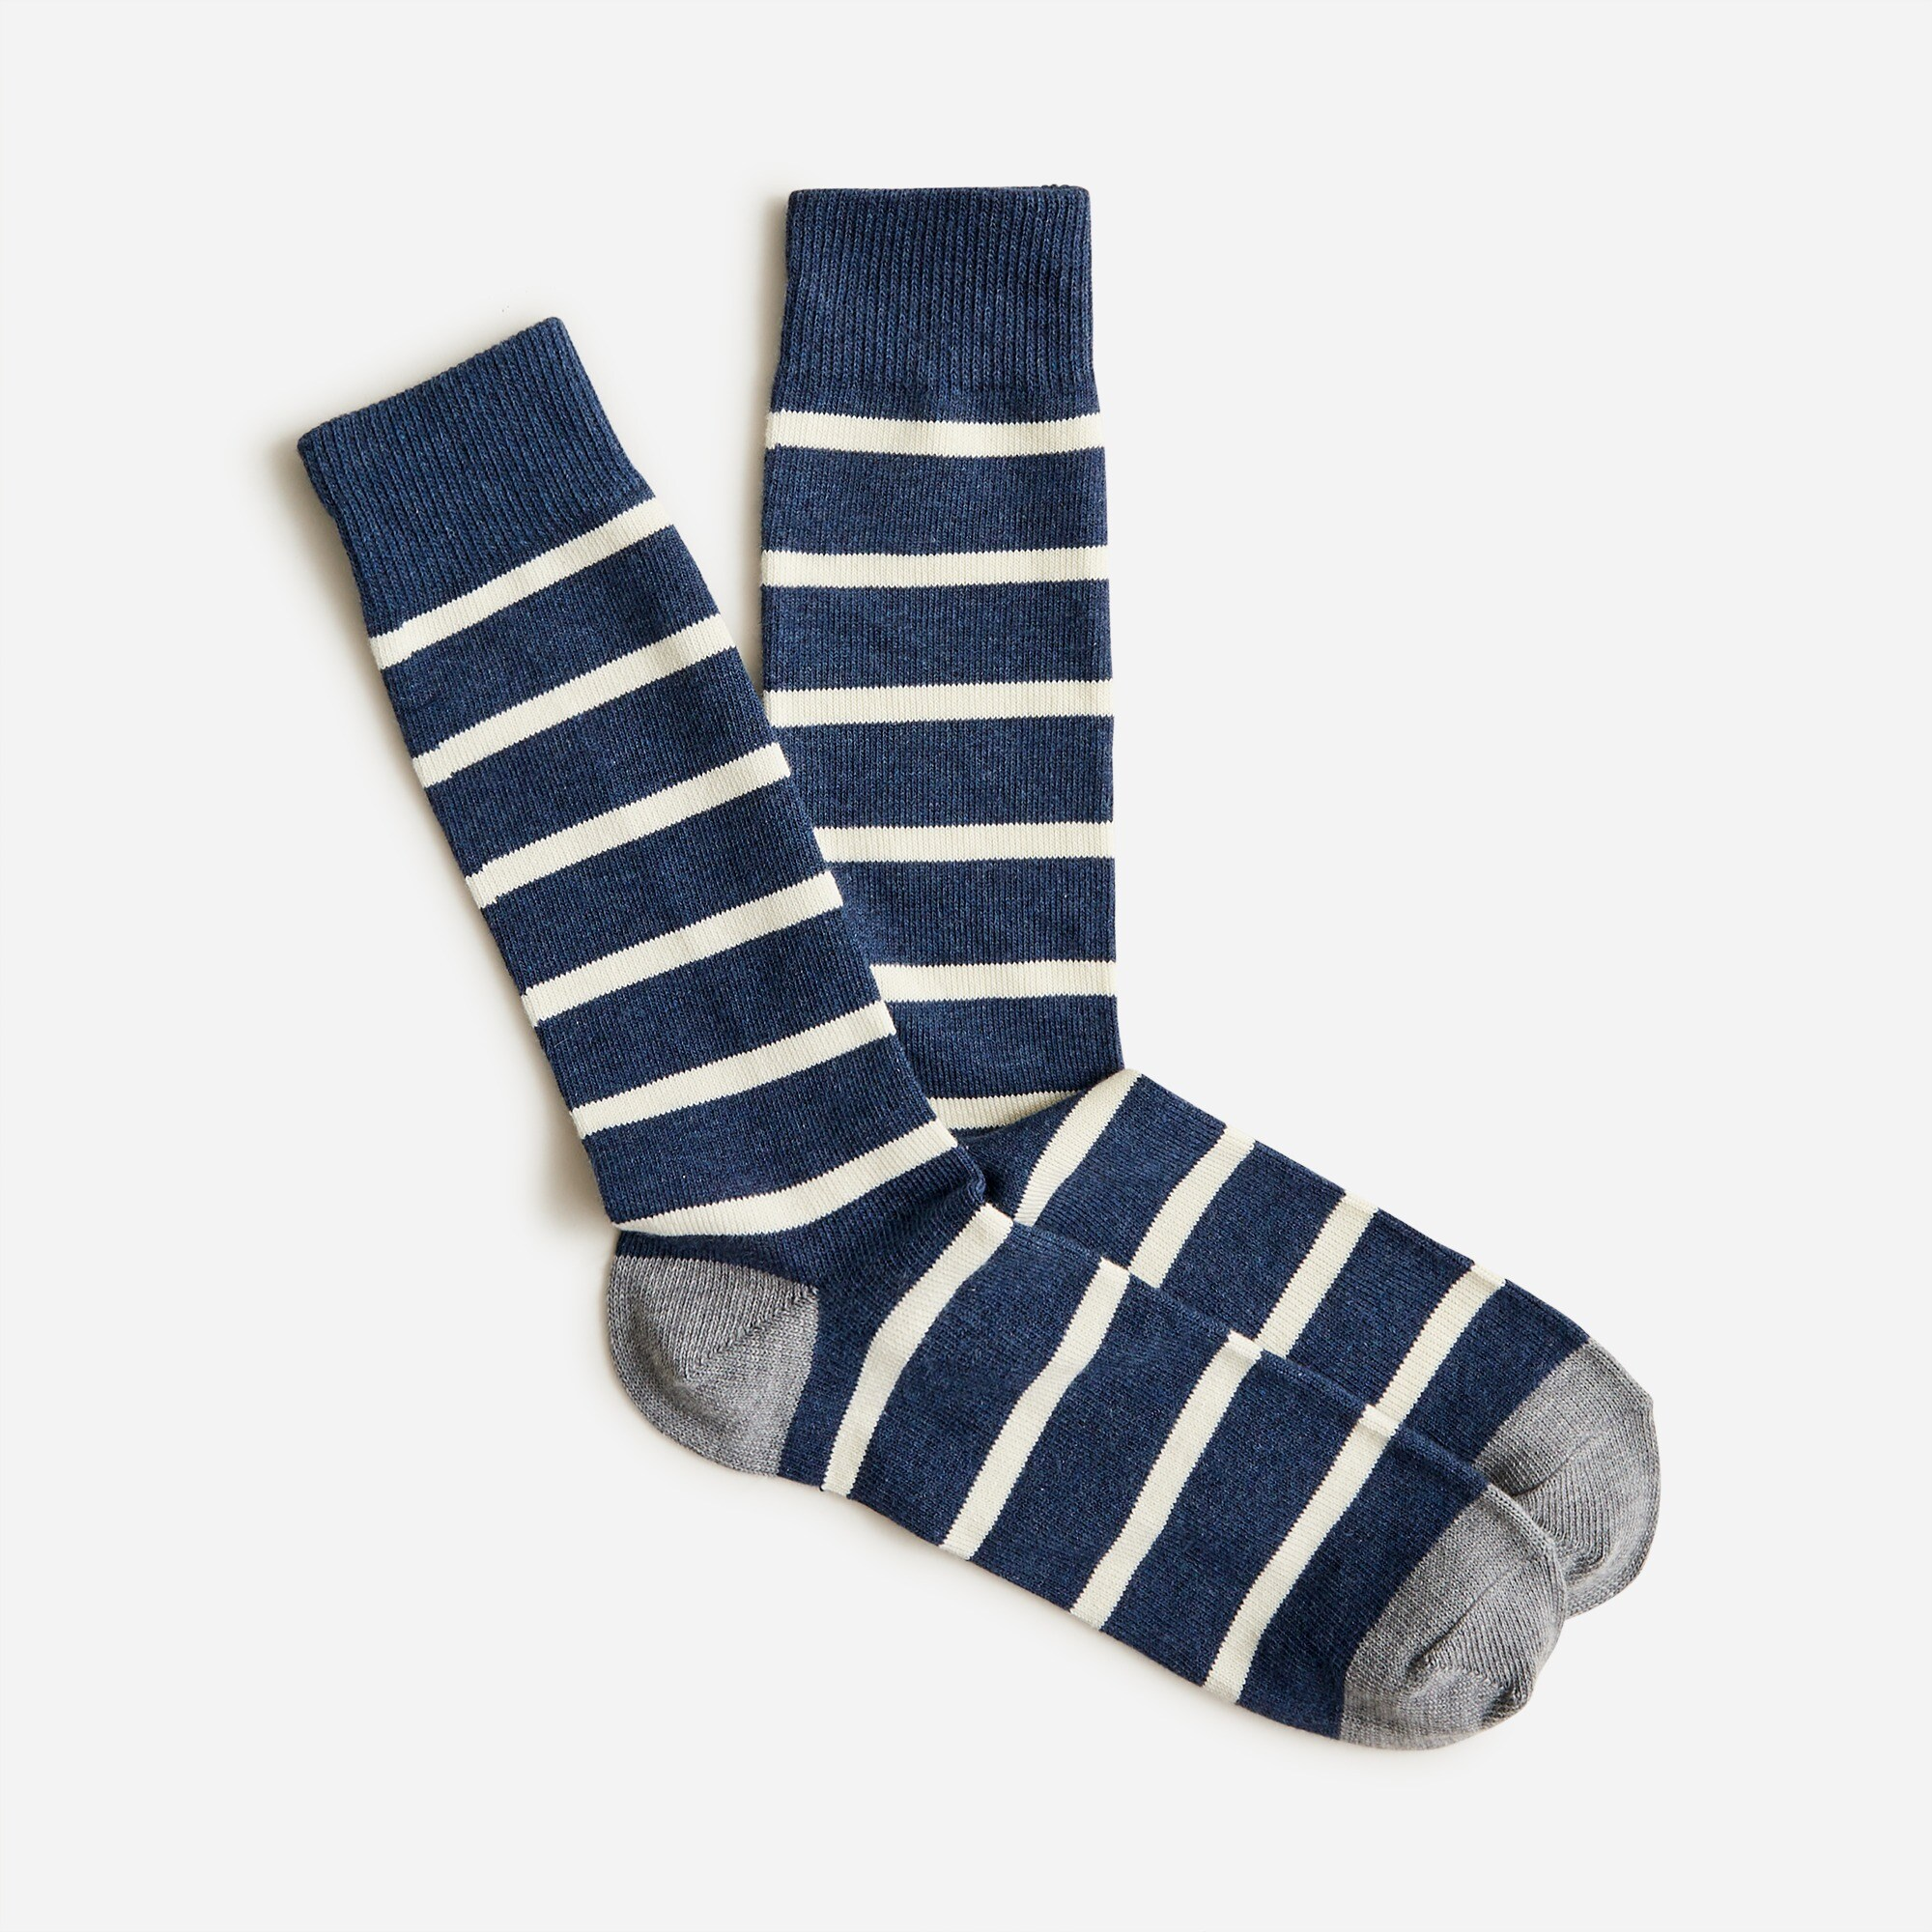 mens Naval-striped socks